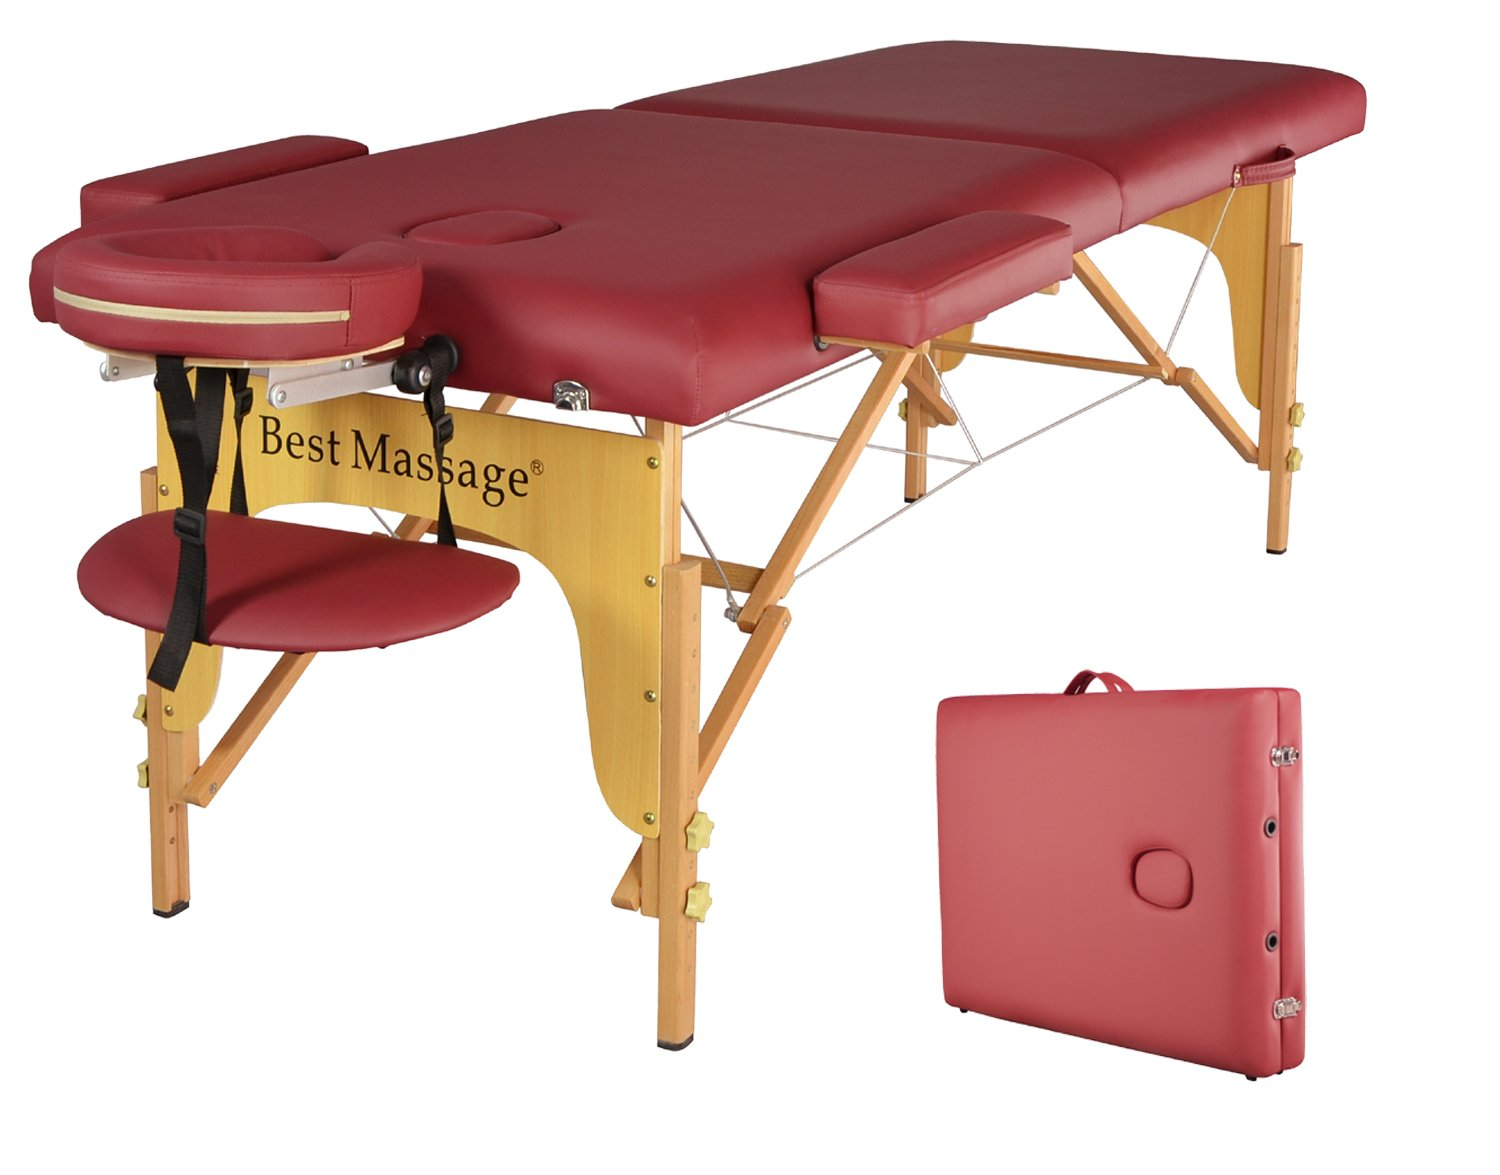 Top 20 Best Portable Massage Tables Reviews 2016 2017 On Flipboard